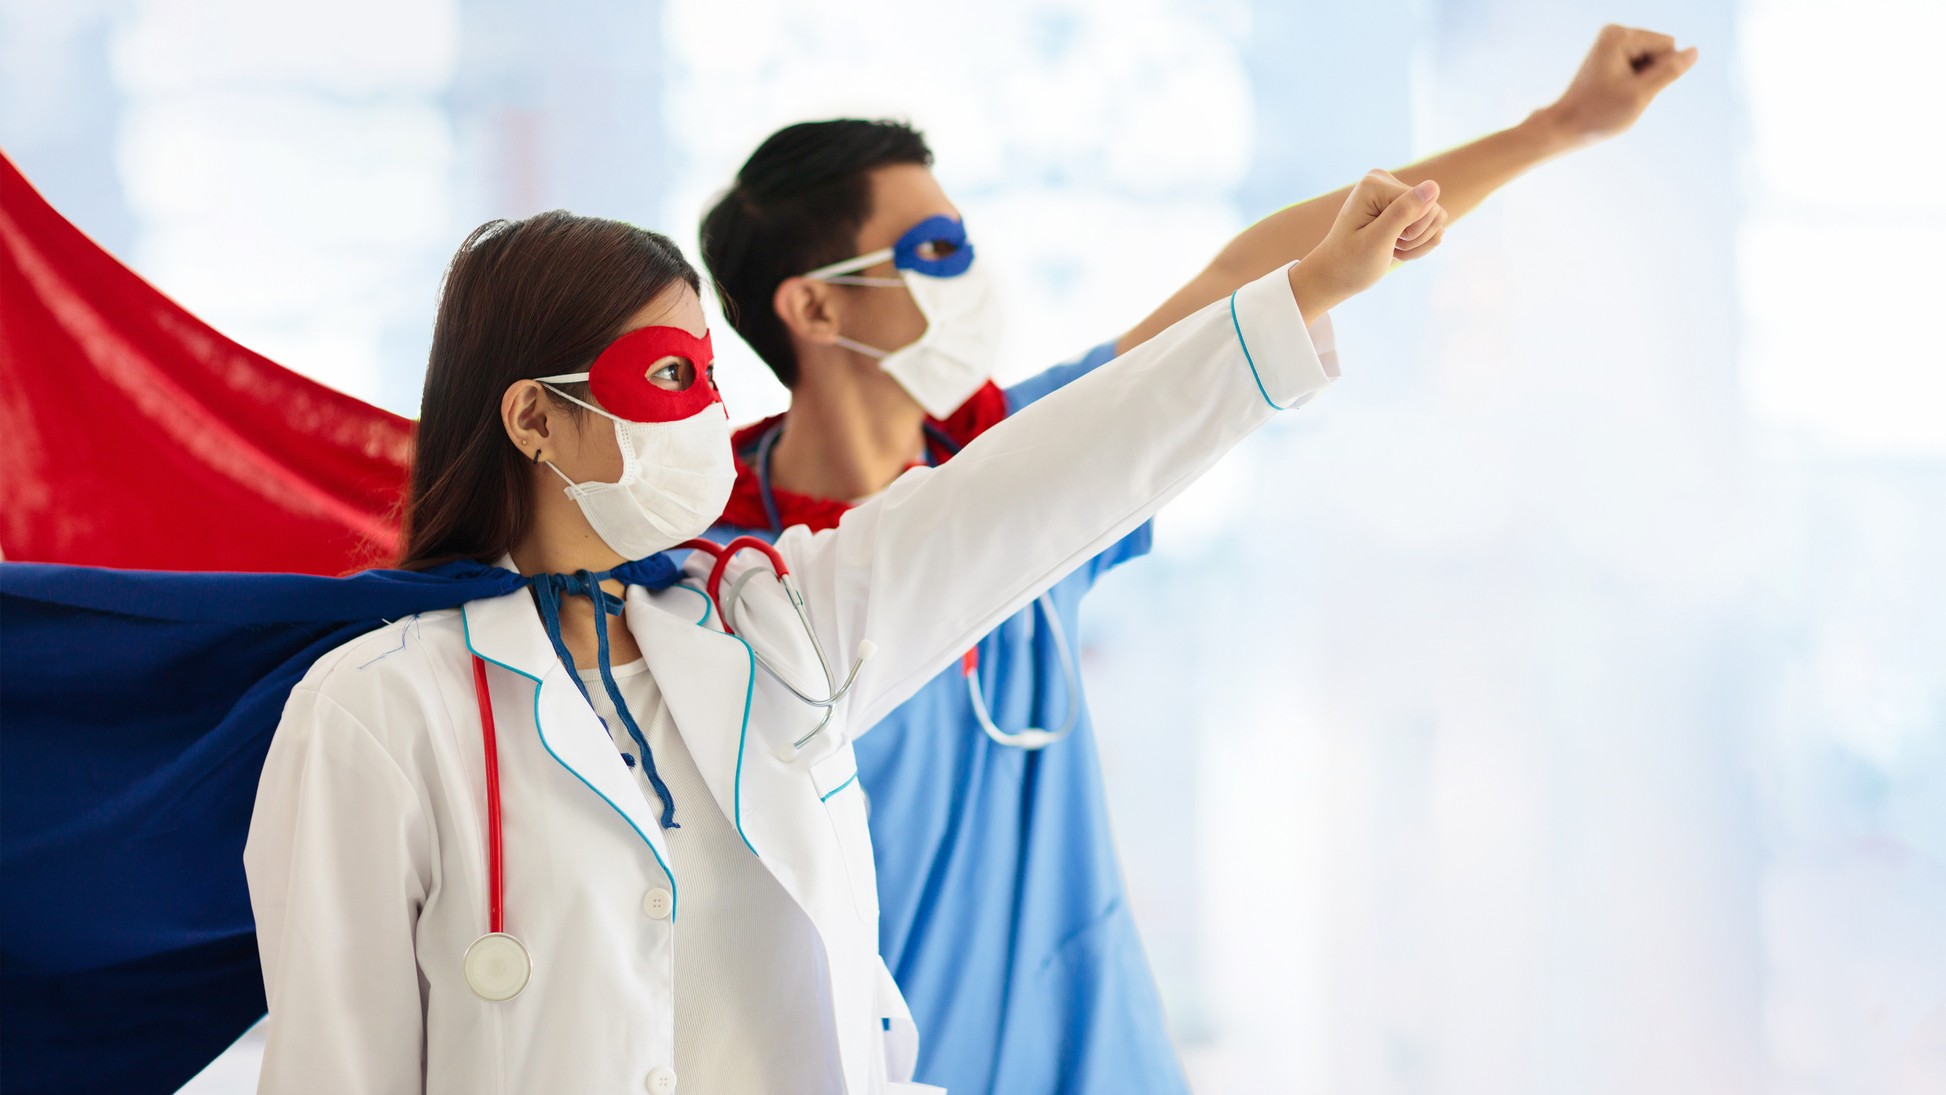 Medical staff wear hero capes, indicting strong shar [price performace for healthcare shares